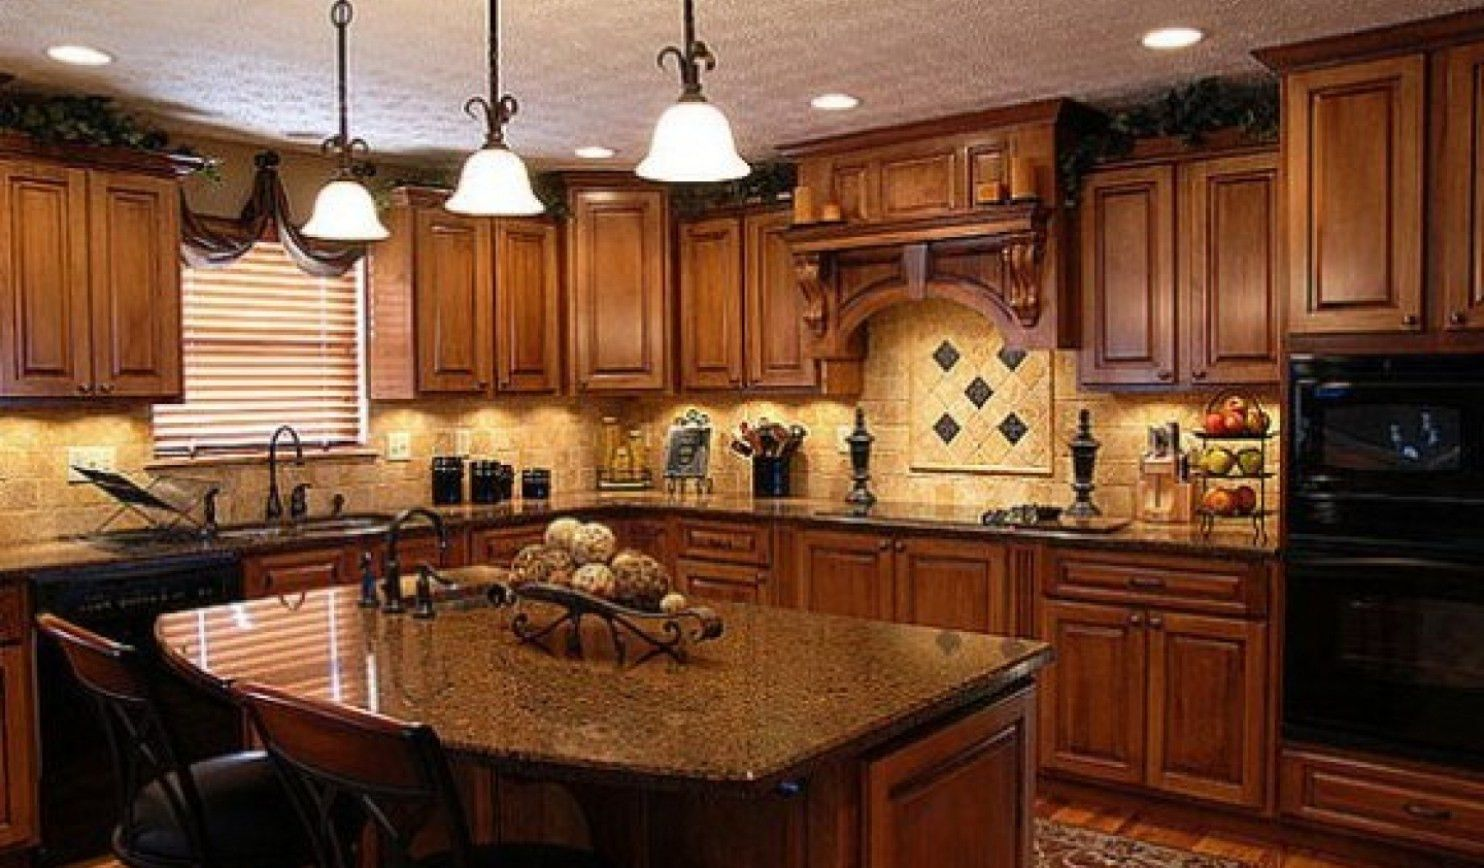 Kitchen Island Clearance Sale Pin By Rahayu12 On Interior Analogi In 2018 Oak Cabinets